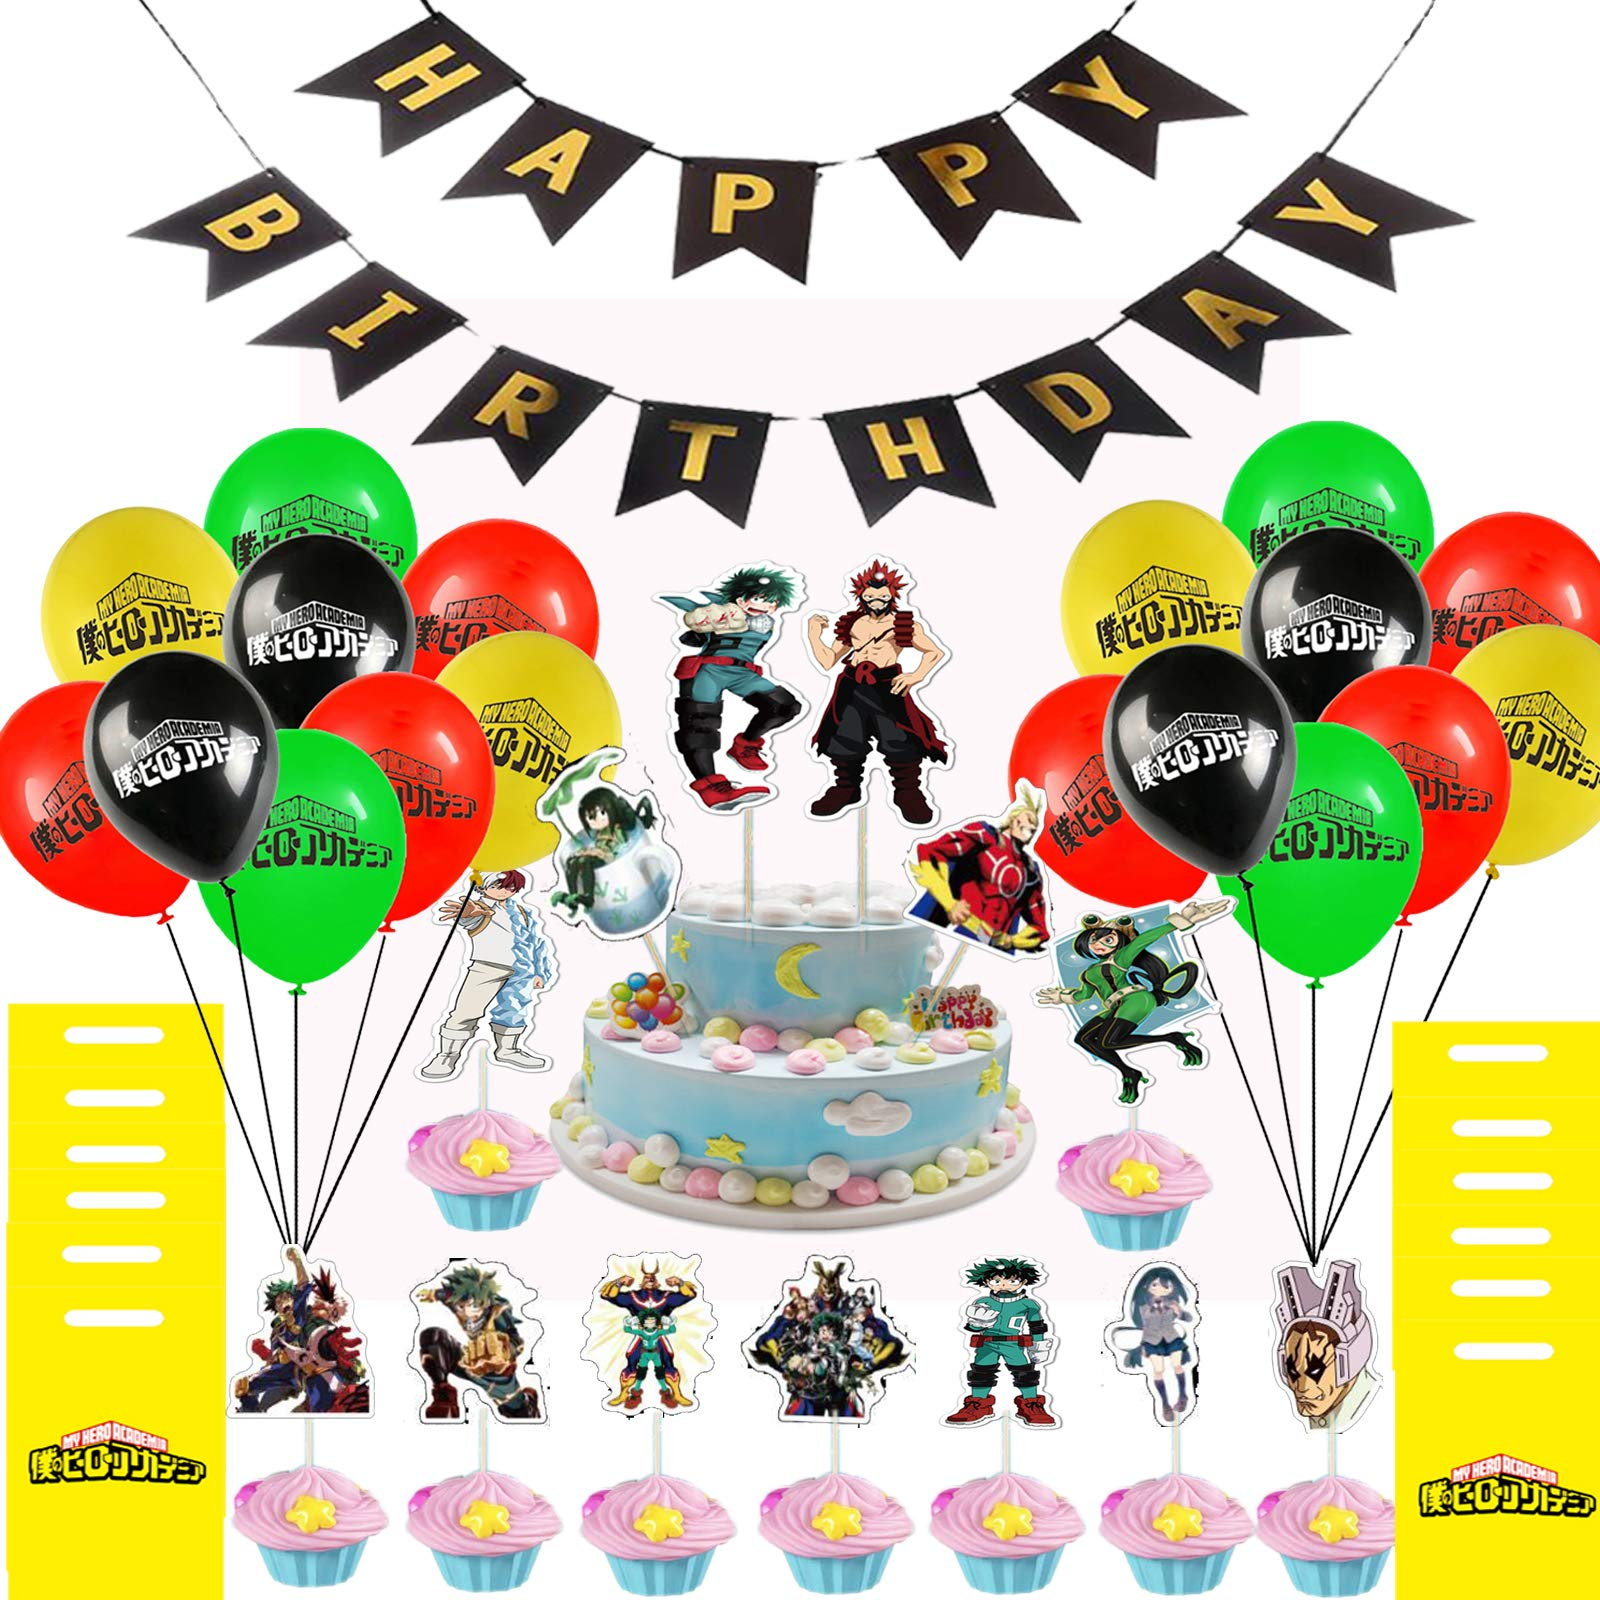 My Hero Academia Balloon Banner Cake Toppers Party Bags Set, 103 Pack MHA Party Supplies - 1 Banner, 40 Balloons, 12 Party Candy Bags, 50 Cake Toppers for MHA Fans